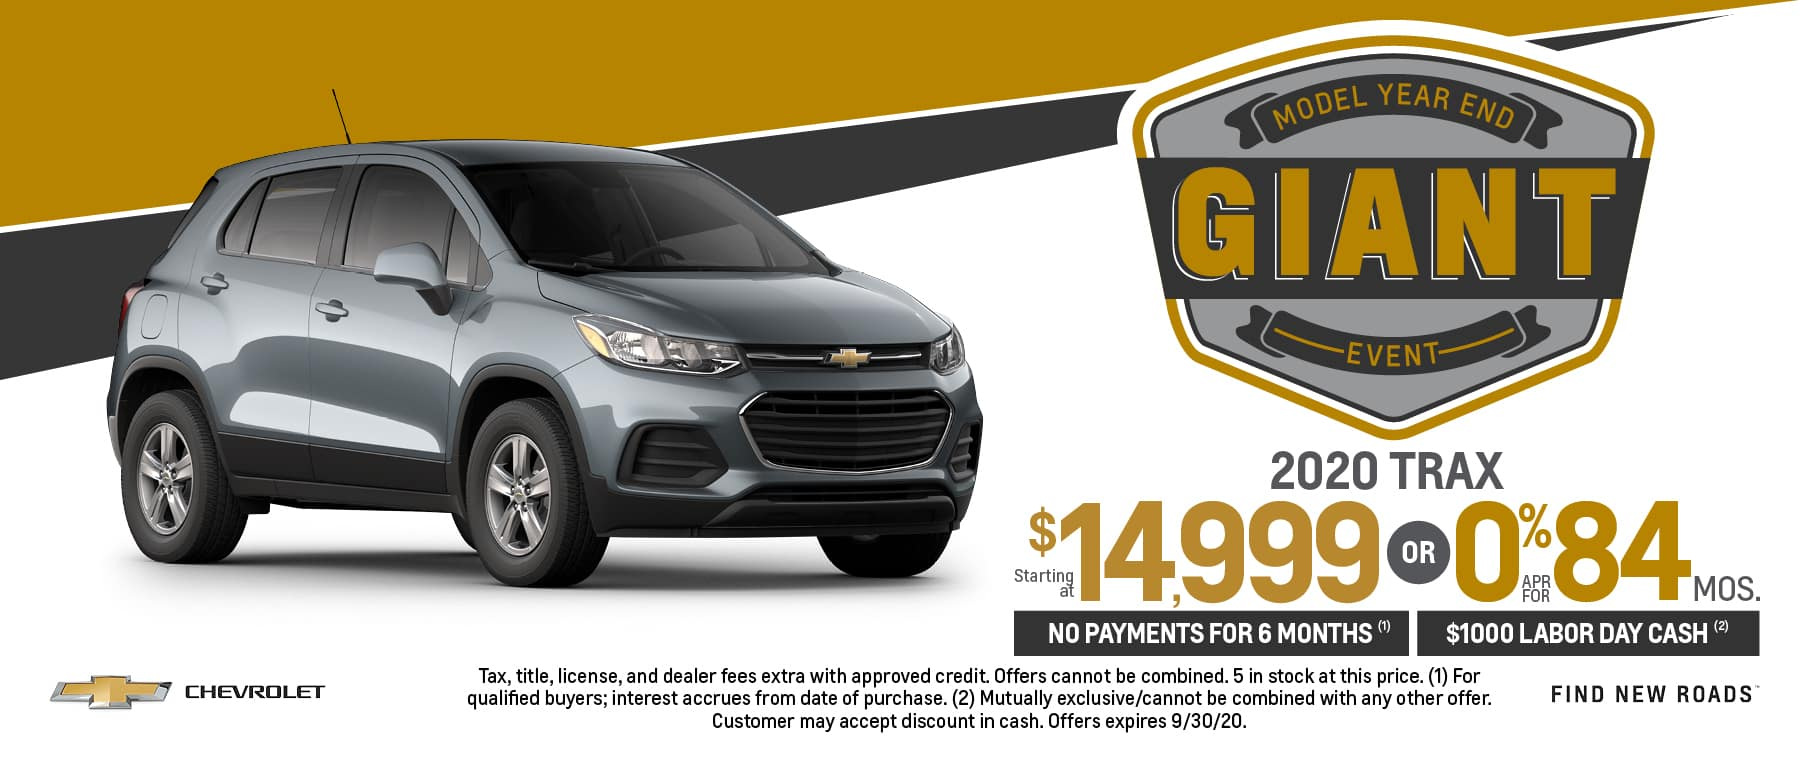 Chevrolet Of Wesley Chapel   Chevy Dealer near Tampa, FL